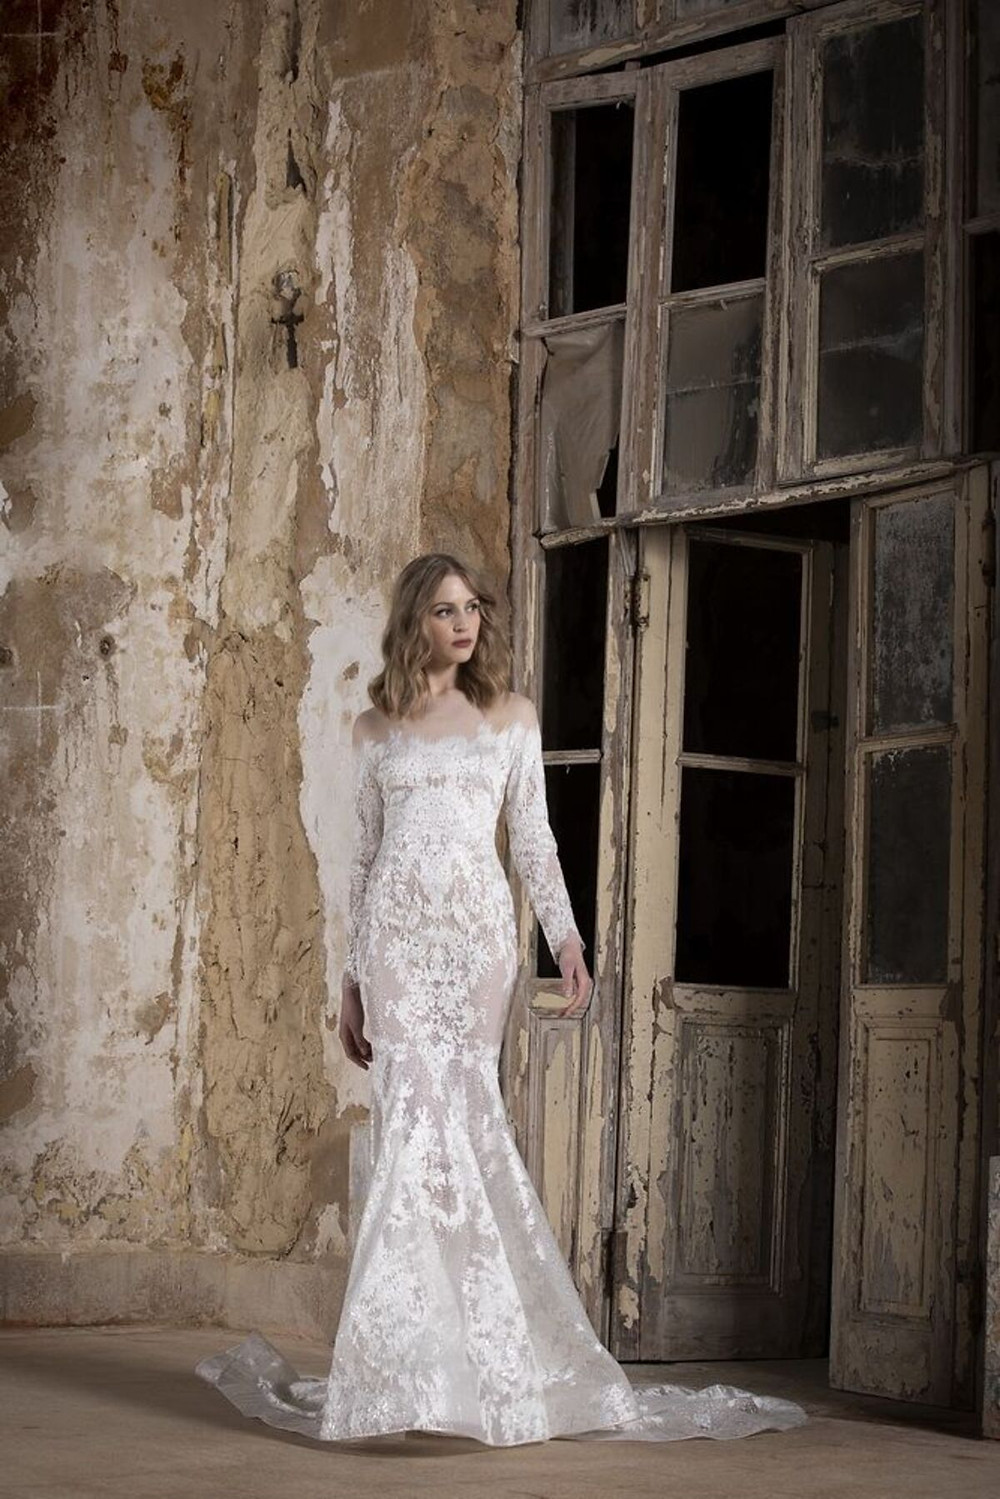 An off-shoulder illusion backless mermaid wedding gown featuring embroidered tulle and sequin embellishments